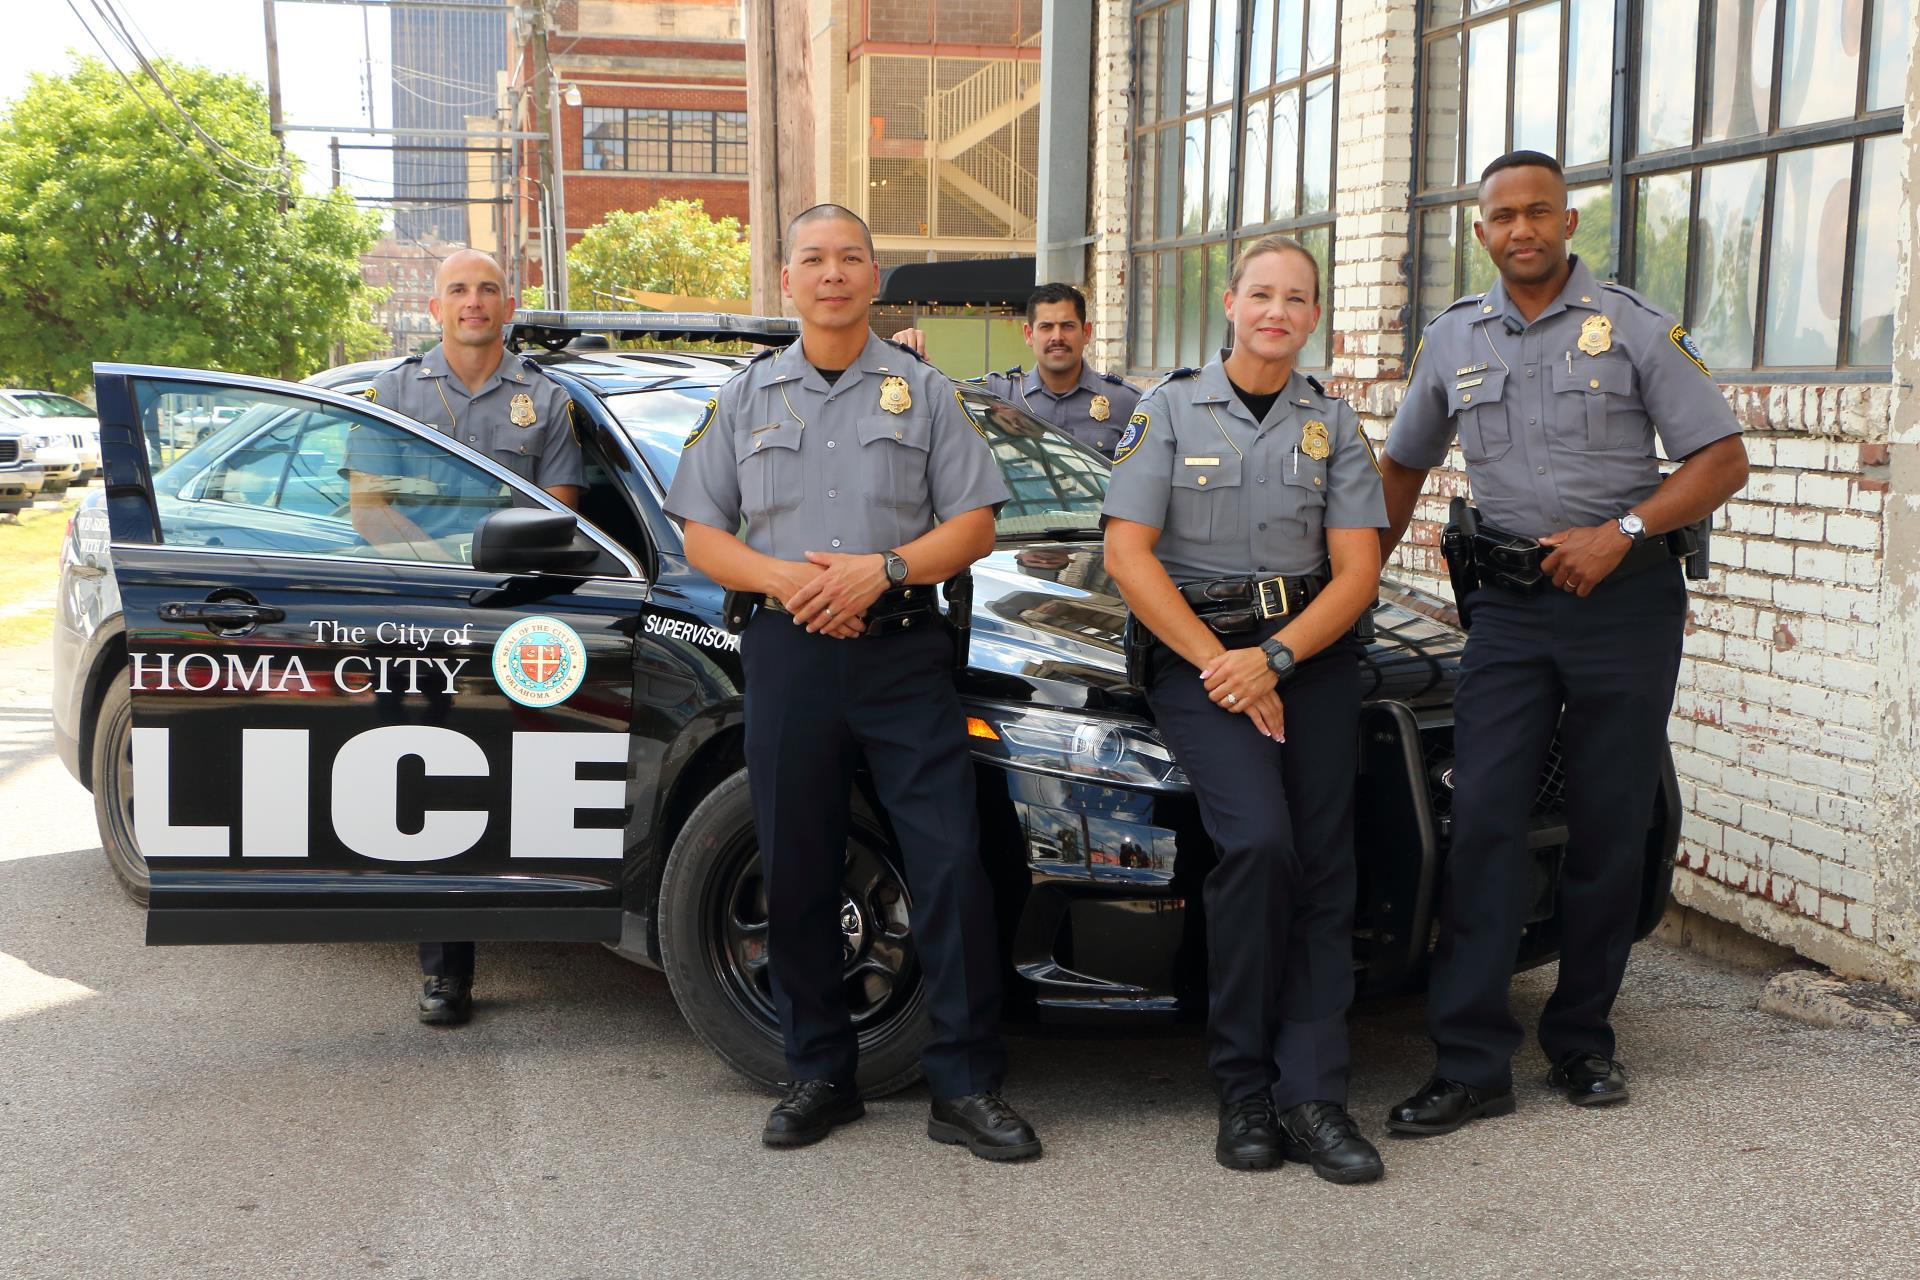 Police Officers in Bricktown